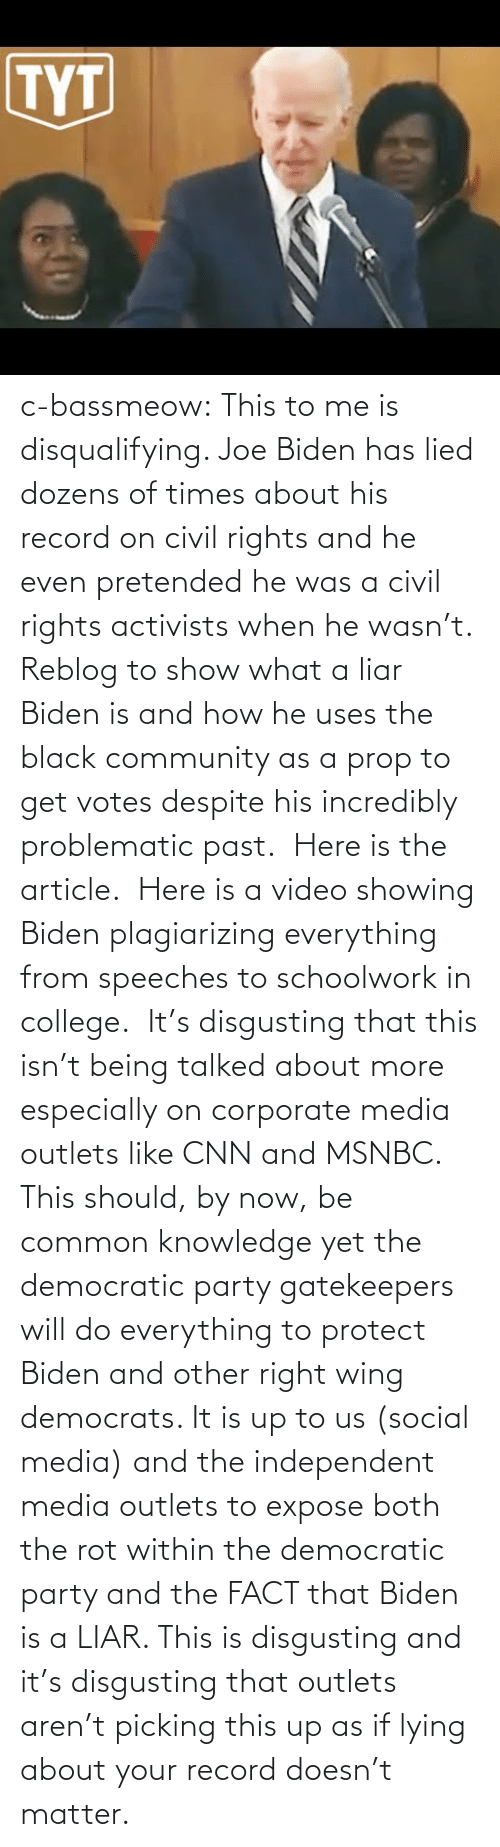 community: c-bassmeow: This to me is disqualifying. Joe Biden has lied dozens of times about his record on civil rights and he even pretended he was a civil rights activists when he wasn't. Reblog to show what a liar Biden is and how he uses the black community as a prop to get votes despite his incredibly problematic past.   Here is the article.   Here is a video showing Biden plagiarizing everything from speeches to schoolwork in college.   It's disgusting that this isn't being talked about more especially on corporate media outlets like CNN and MSNBC. This should, by now, be common knowledge yet the democratic party gatekeepers will do everything to protect Biden and other right wing democrats. It is up to us (social media) and the independent media outlets to expose both the rot within the democratic party and the FACT that Biden is a LIAR. This is disgusting and it's disgusting that outlets aren't picking this up as if lying about your record doesn't matter.